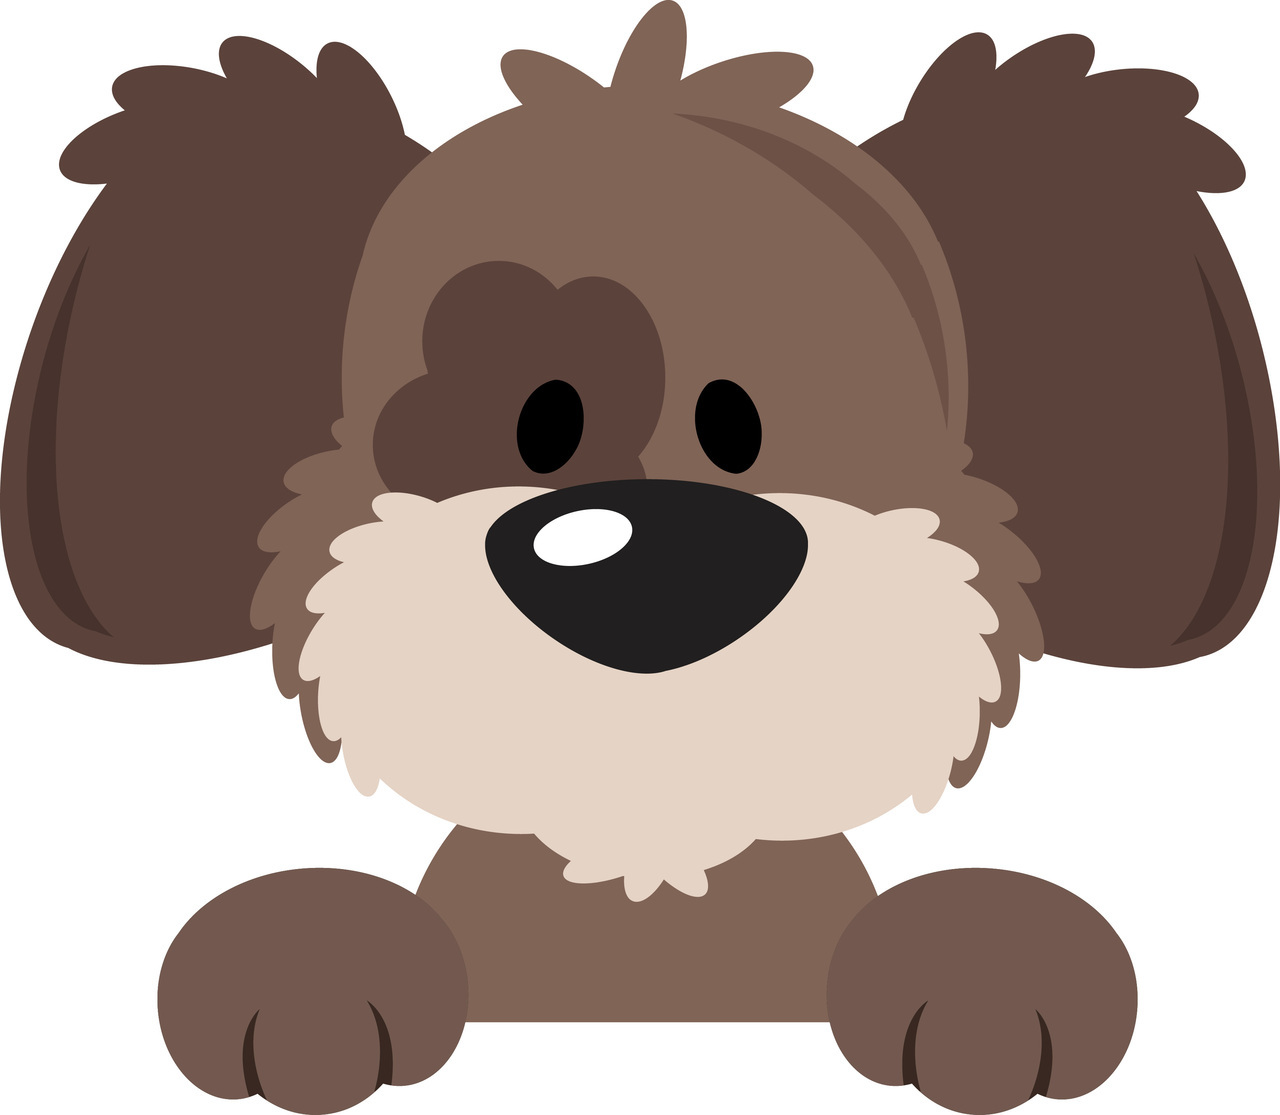 service dog clipart at getdrawings com free for personal use rh getdrawings com free clipart pet care free pet clipart images